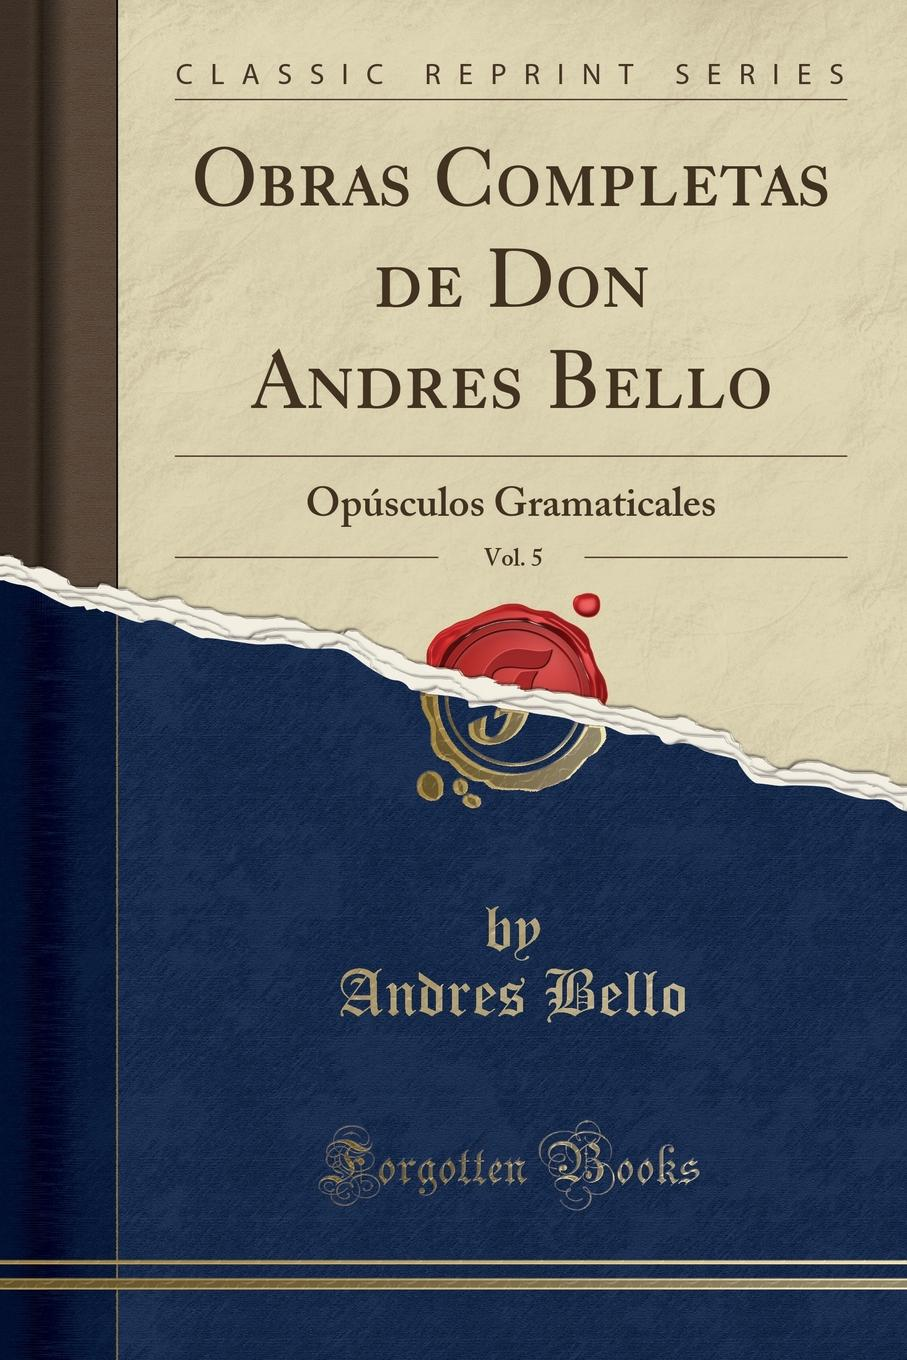 Andres Bello Obras Completas de Don Andres Bello, Vol. 5. Opusculos Gramaticales (Classic Reprint) bl1840 electric drill battery 18v 4000mah for makita 194205 3 194309 1 bl1845 bl1830 bl1445 bl1460 18v 4 0ah li ion battery